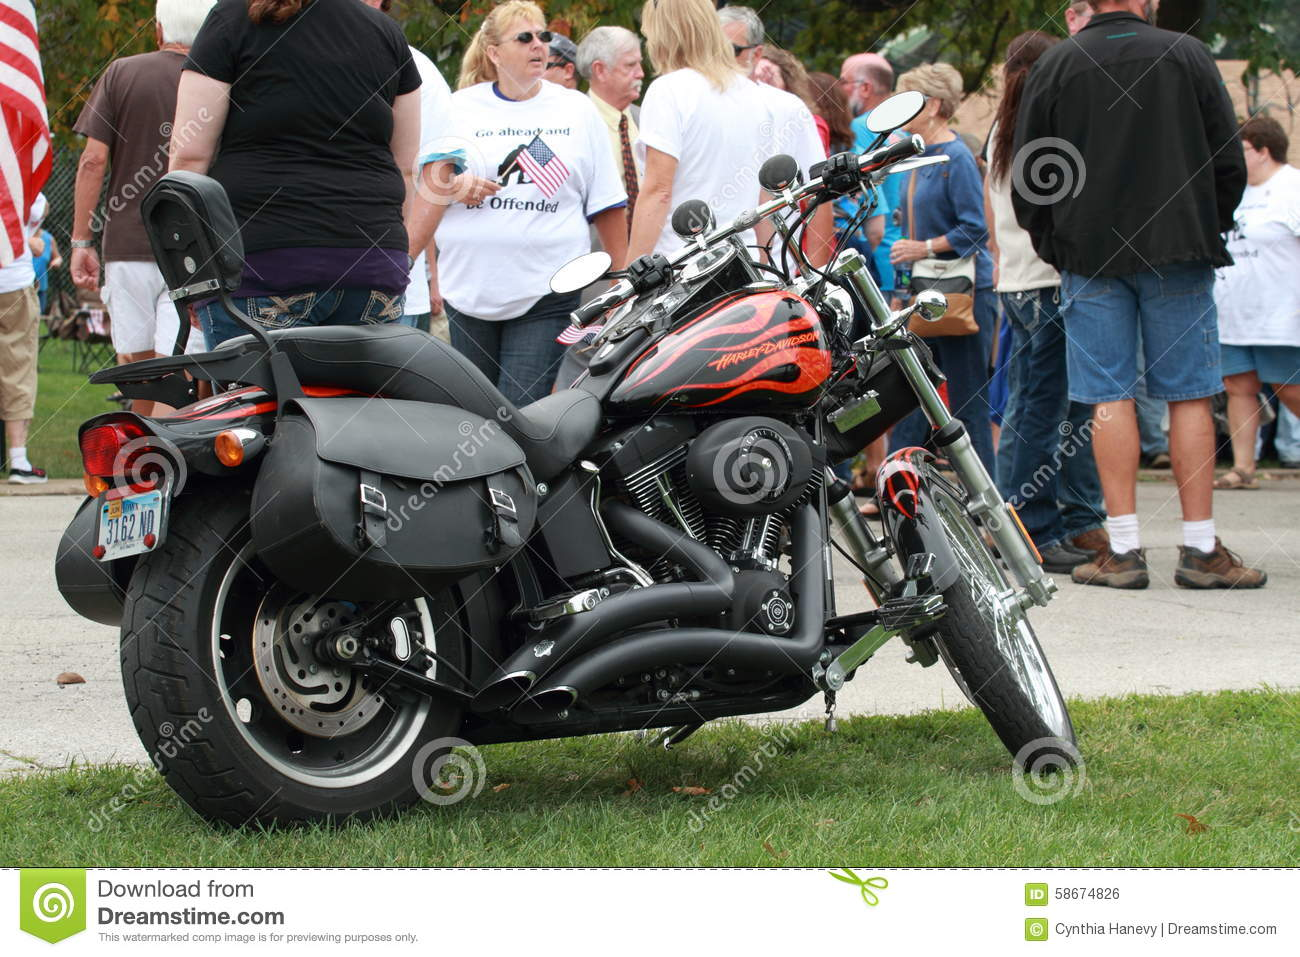 Knoxville Harley Davidson >> Harley Davidson At Save Our Cross Rally Knoxville Iowa